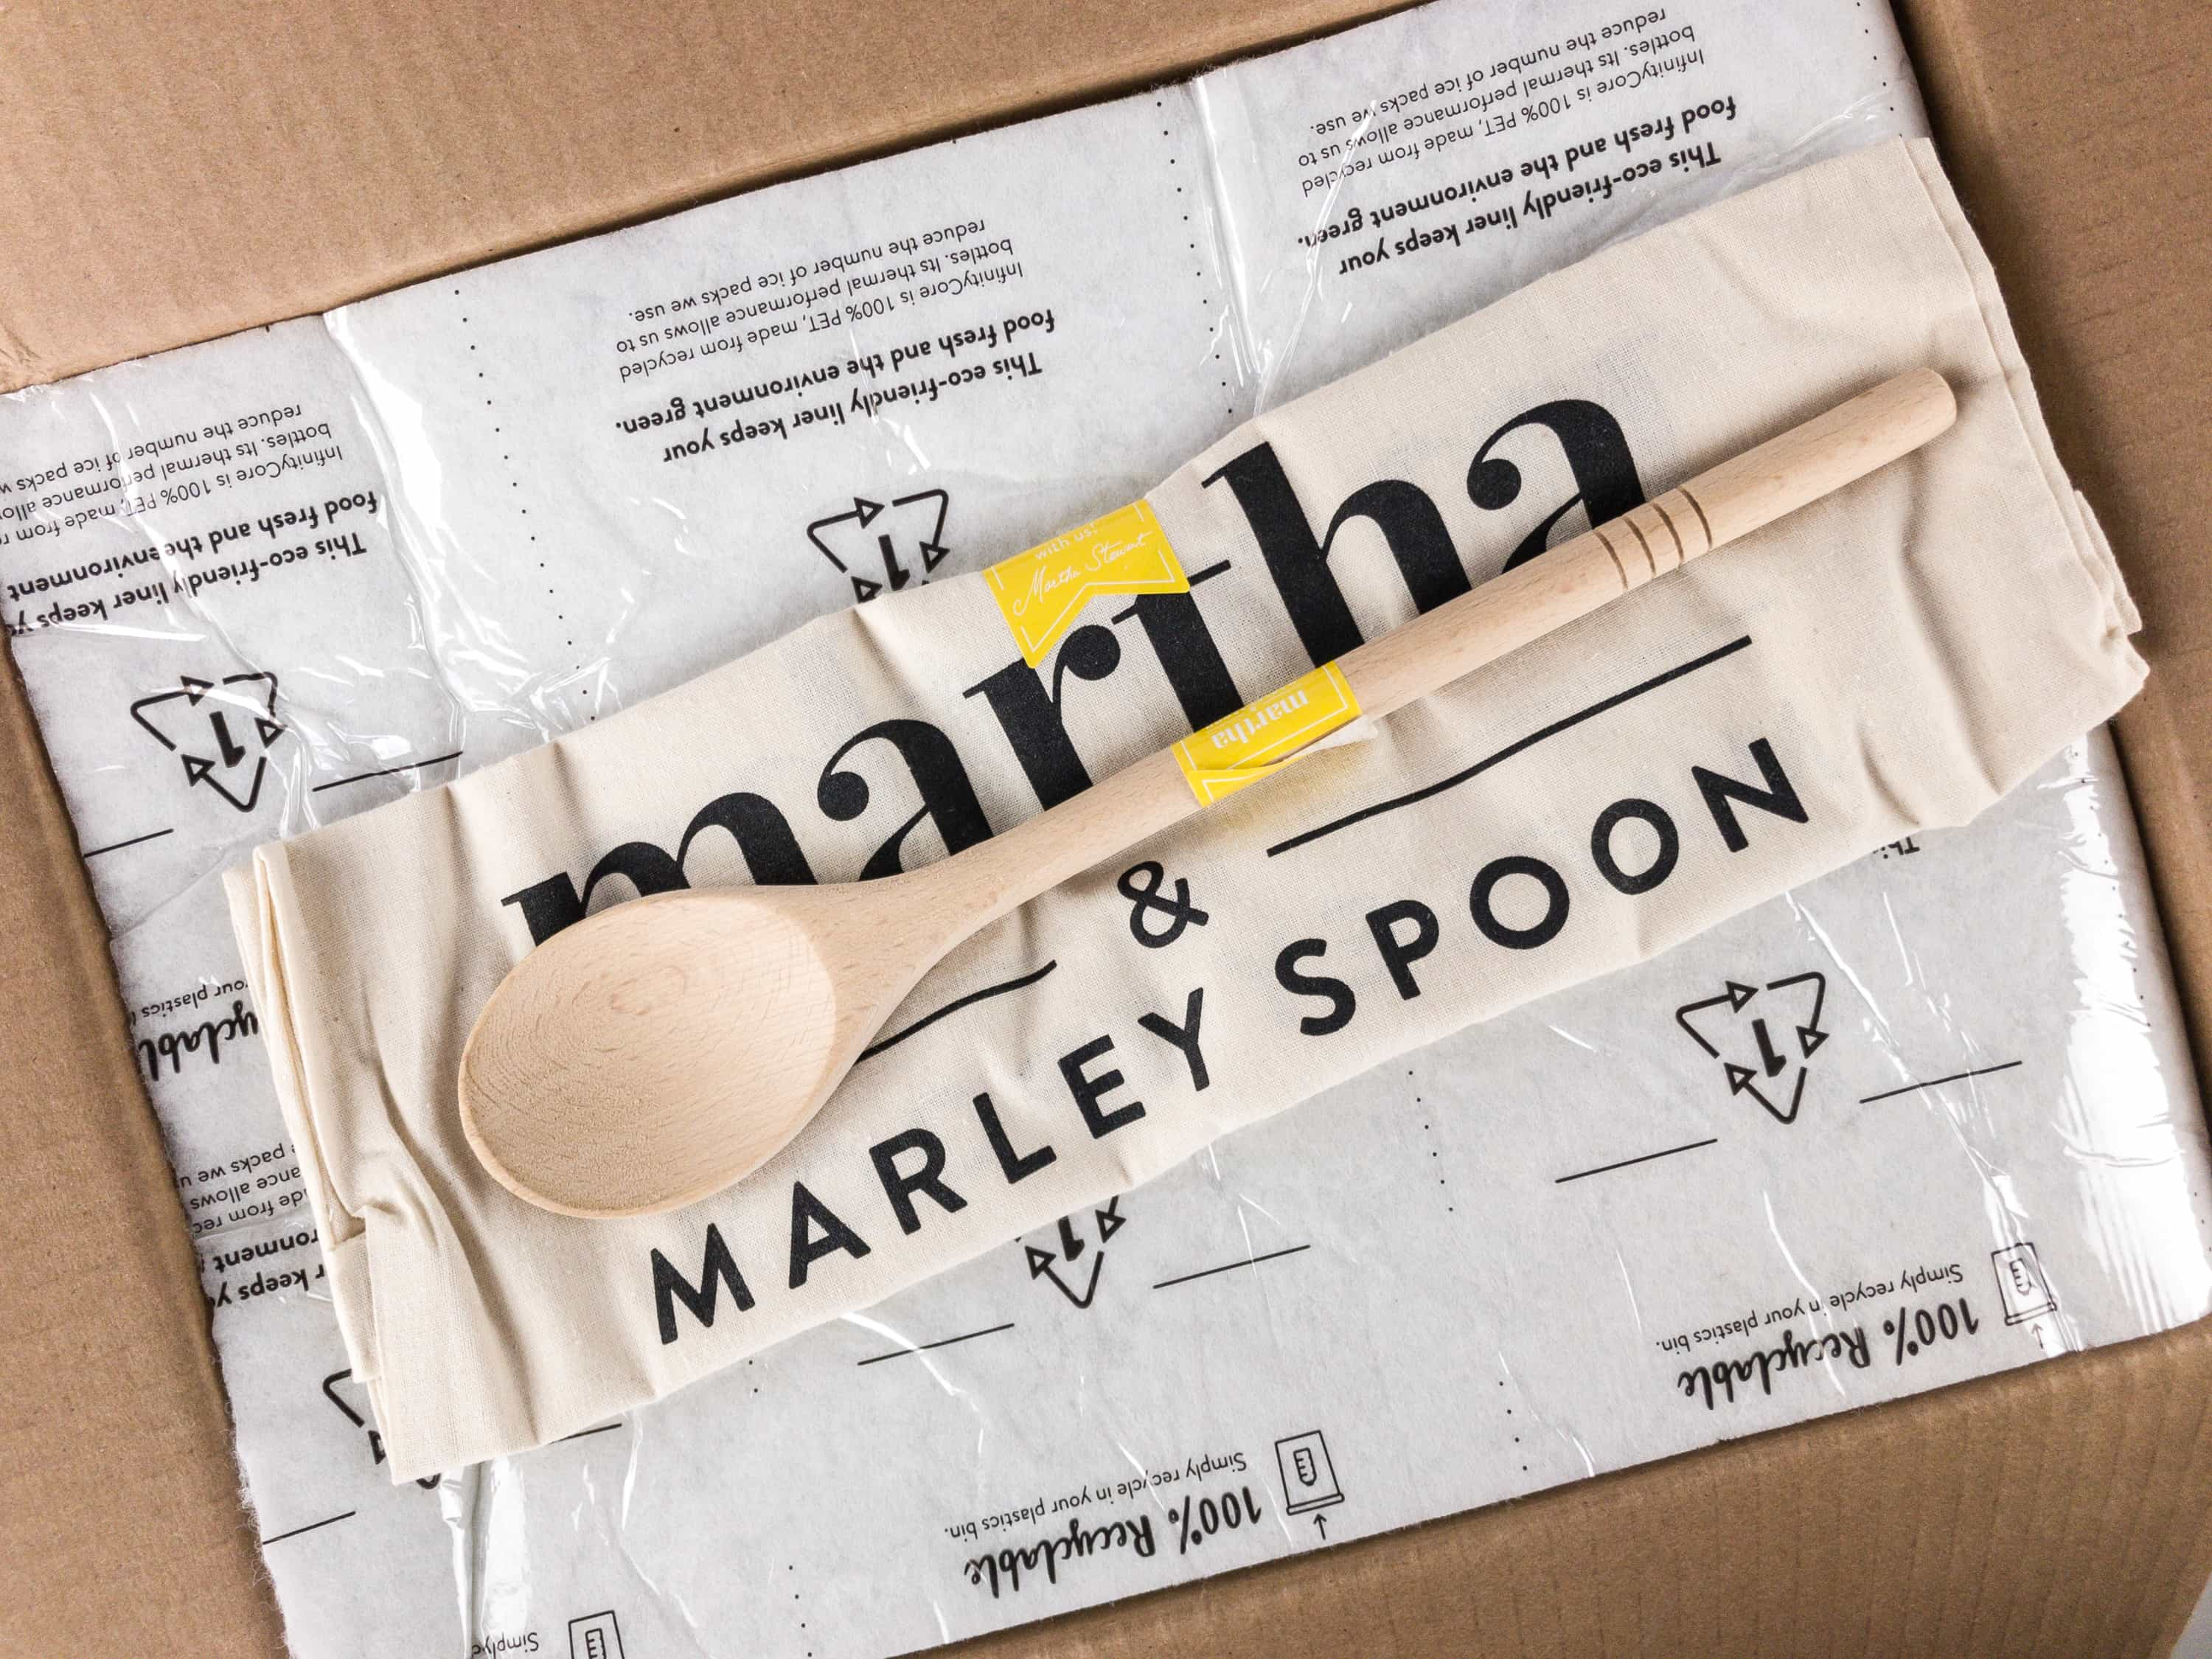 how to cancel marley spoon